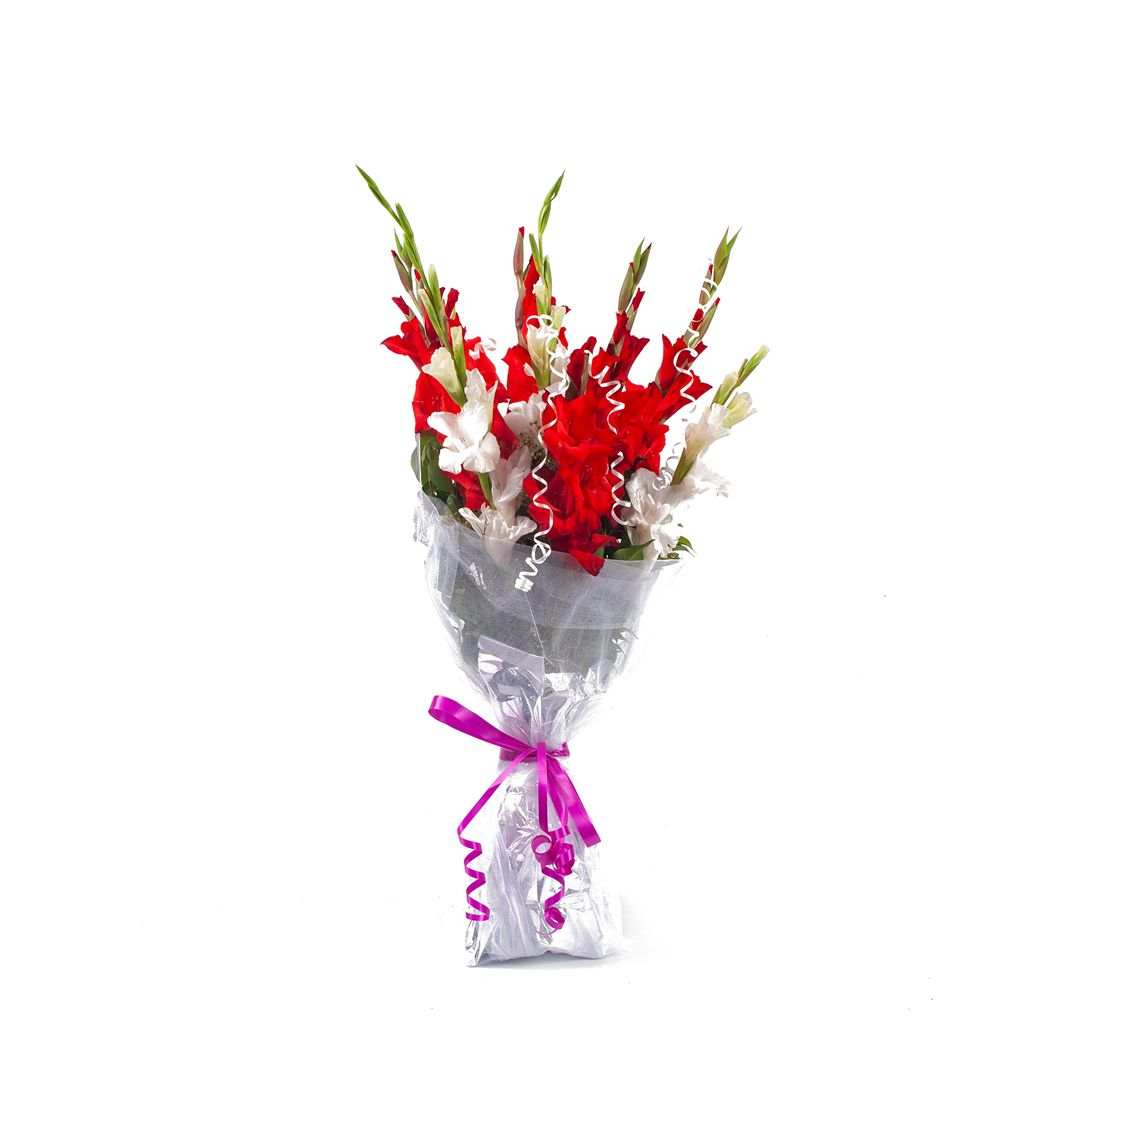 Kitchen Cuisine Default Category Red & White Gladiolus